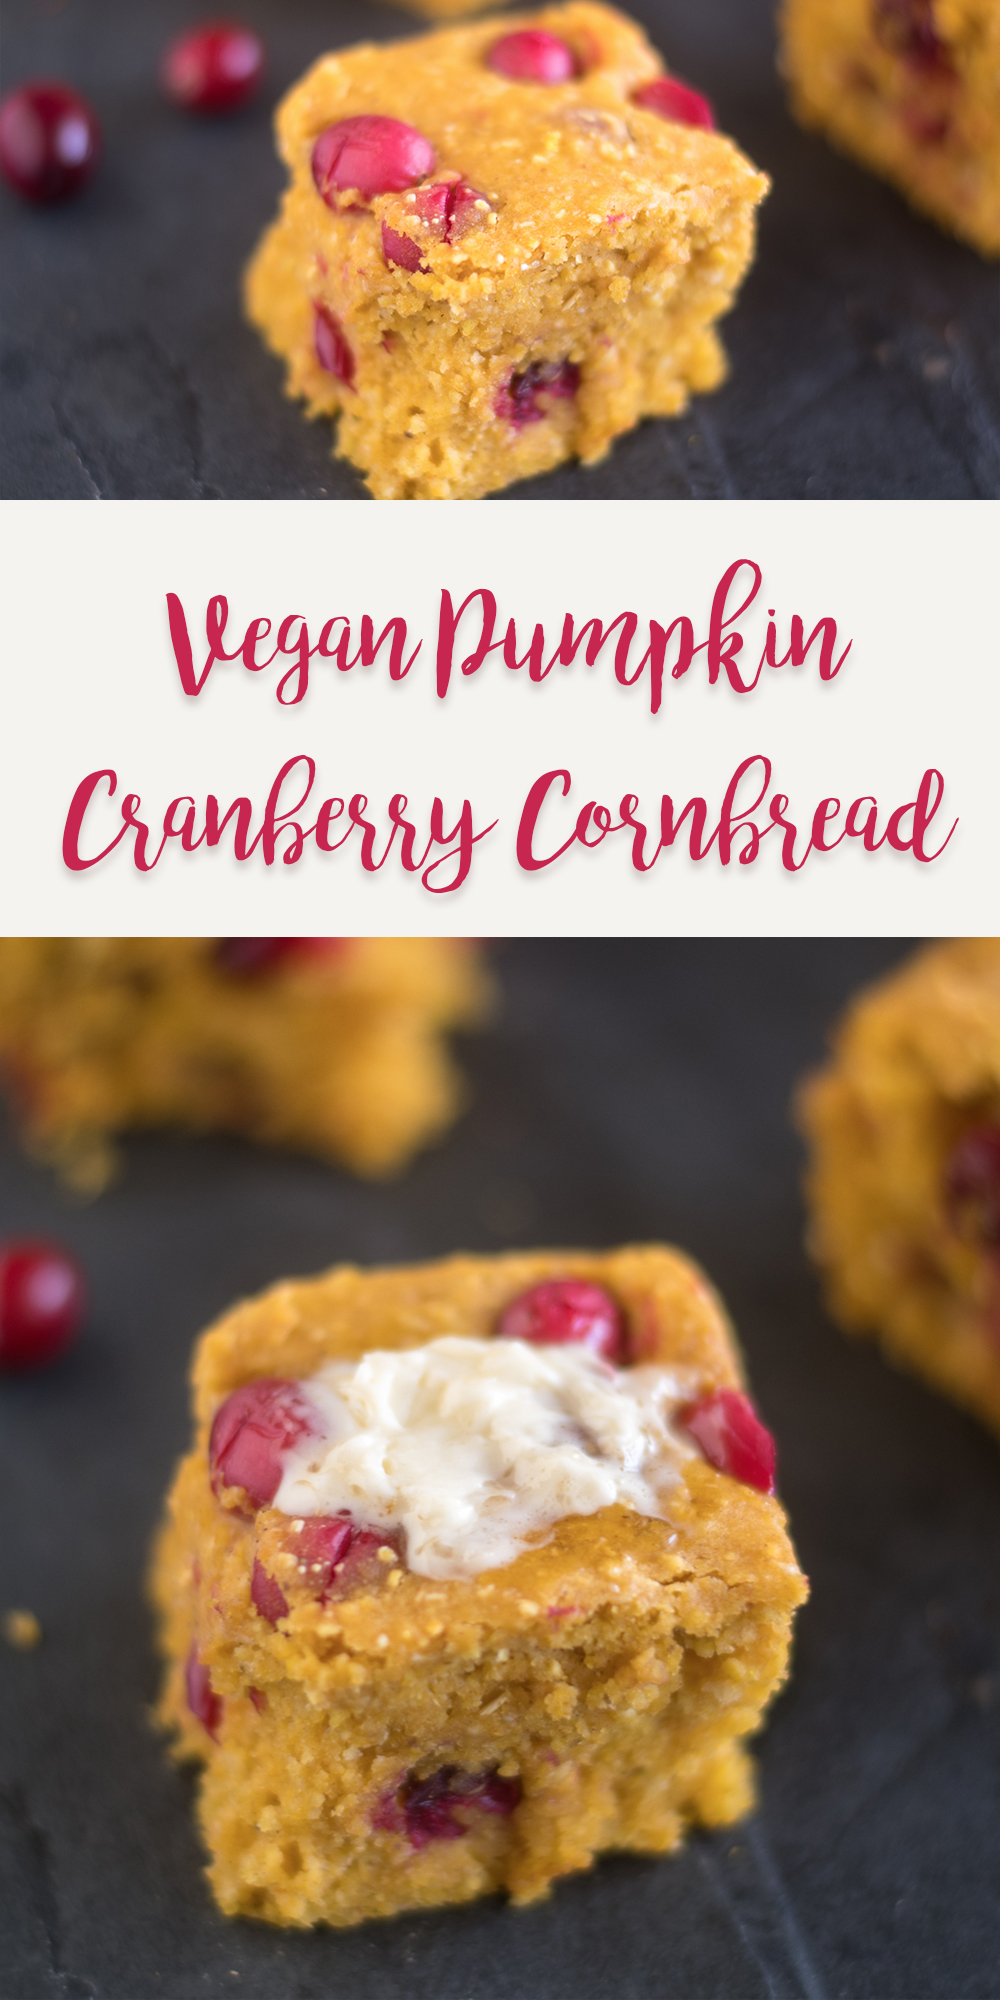 Vegan Pumpkin Cranberry Cornbread is perfect for making this fall and for Thanksgiving. #Fall #recipe #vegan #thanksgiving #pumpkin #holiday